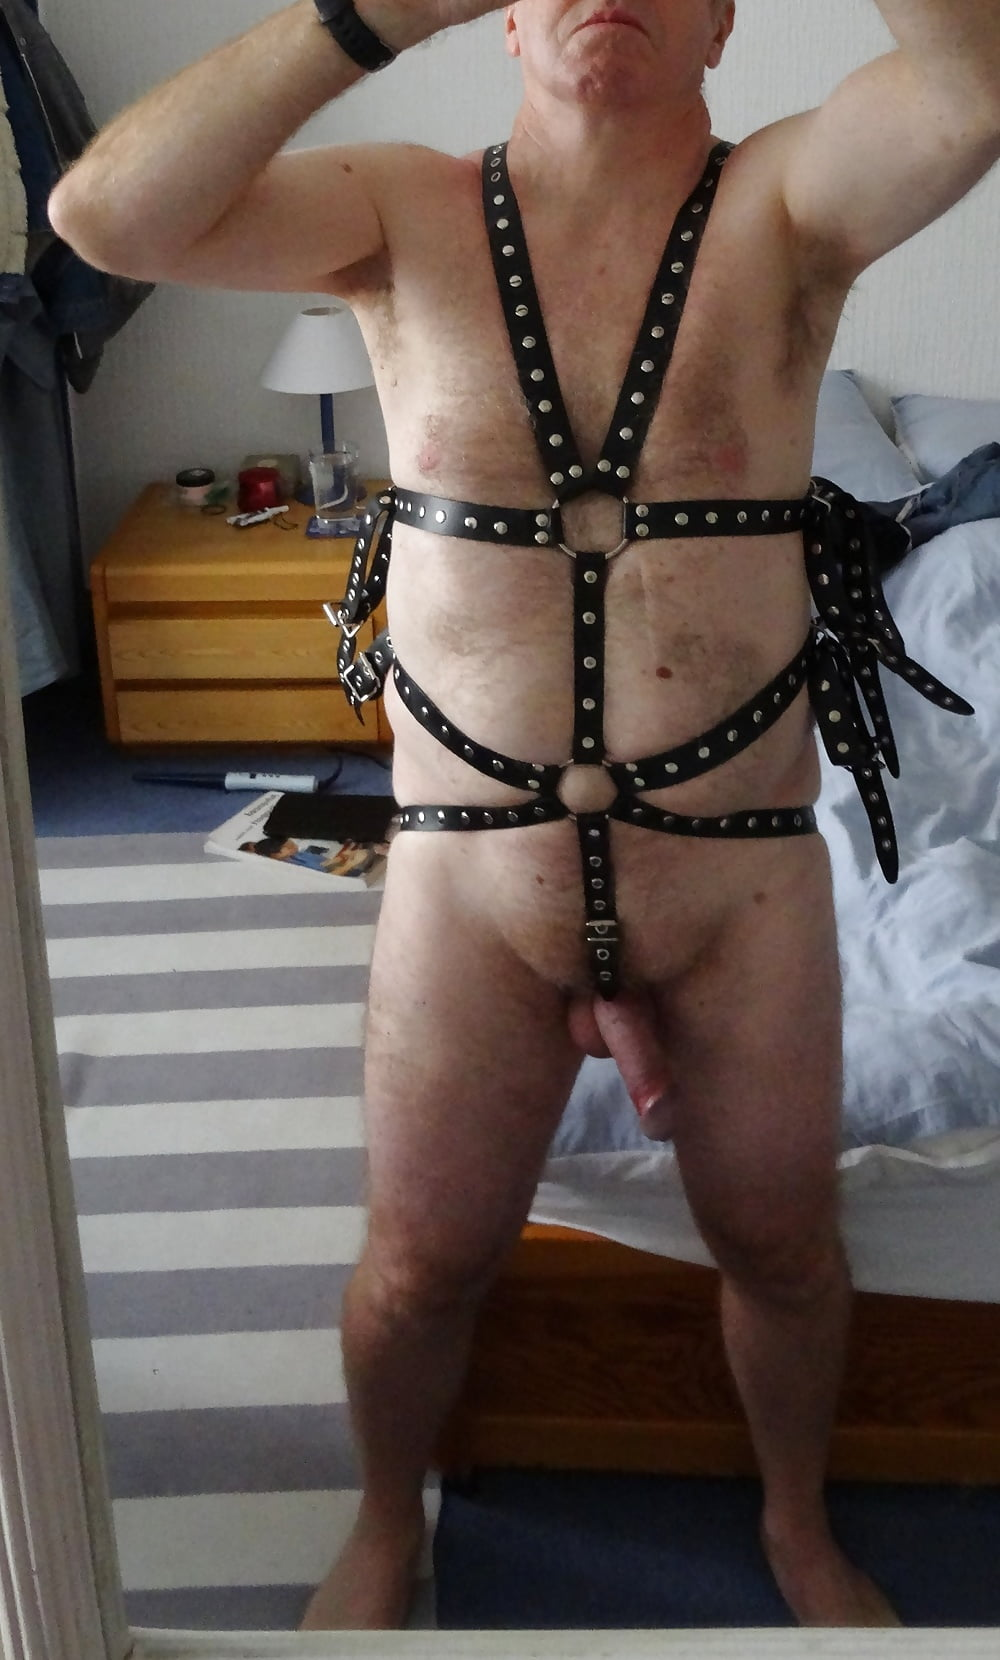 Leather pegging harness